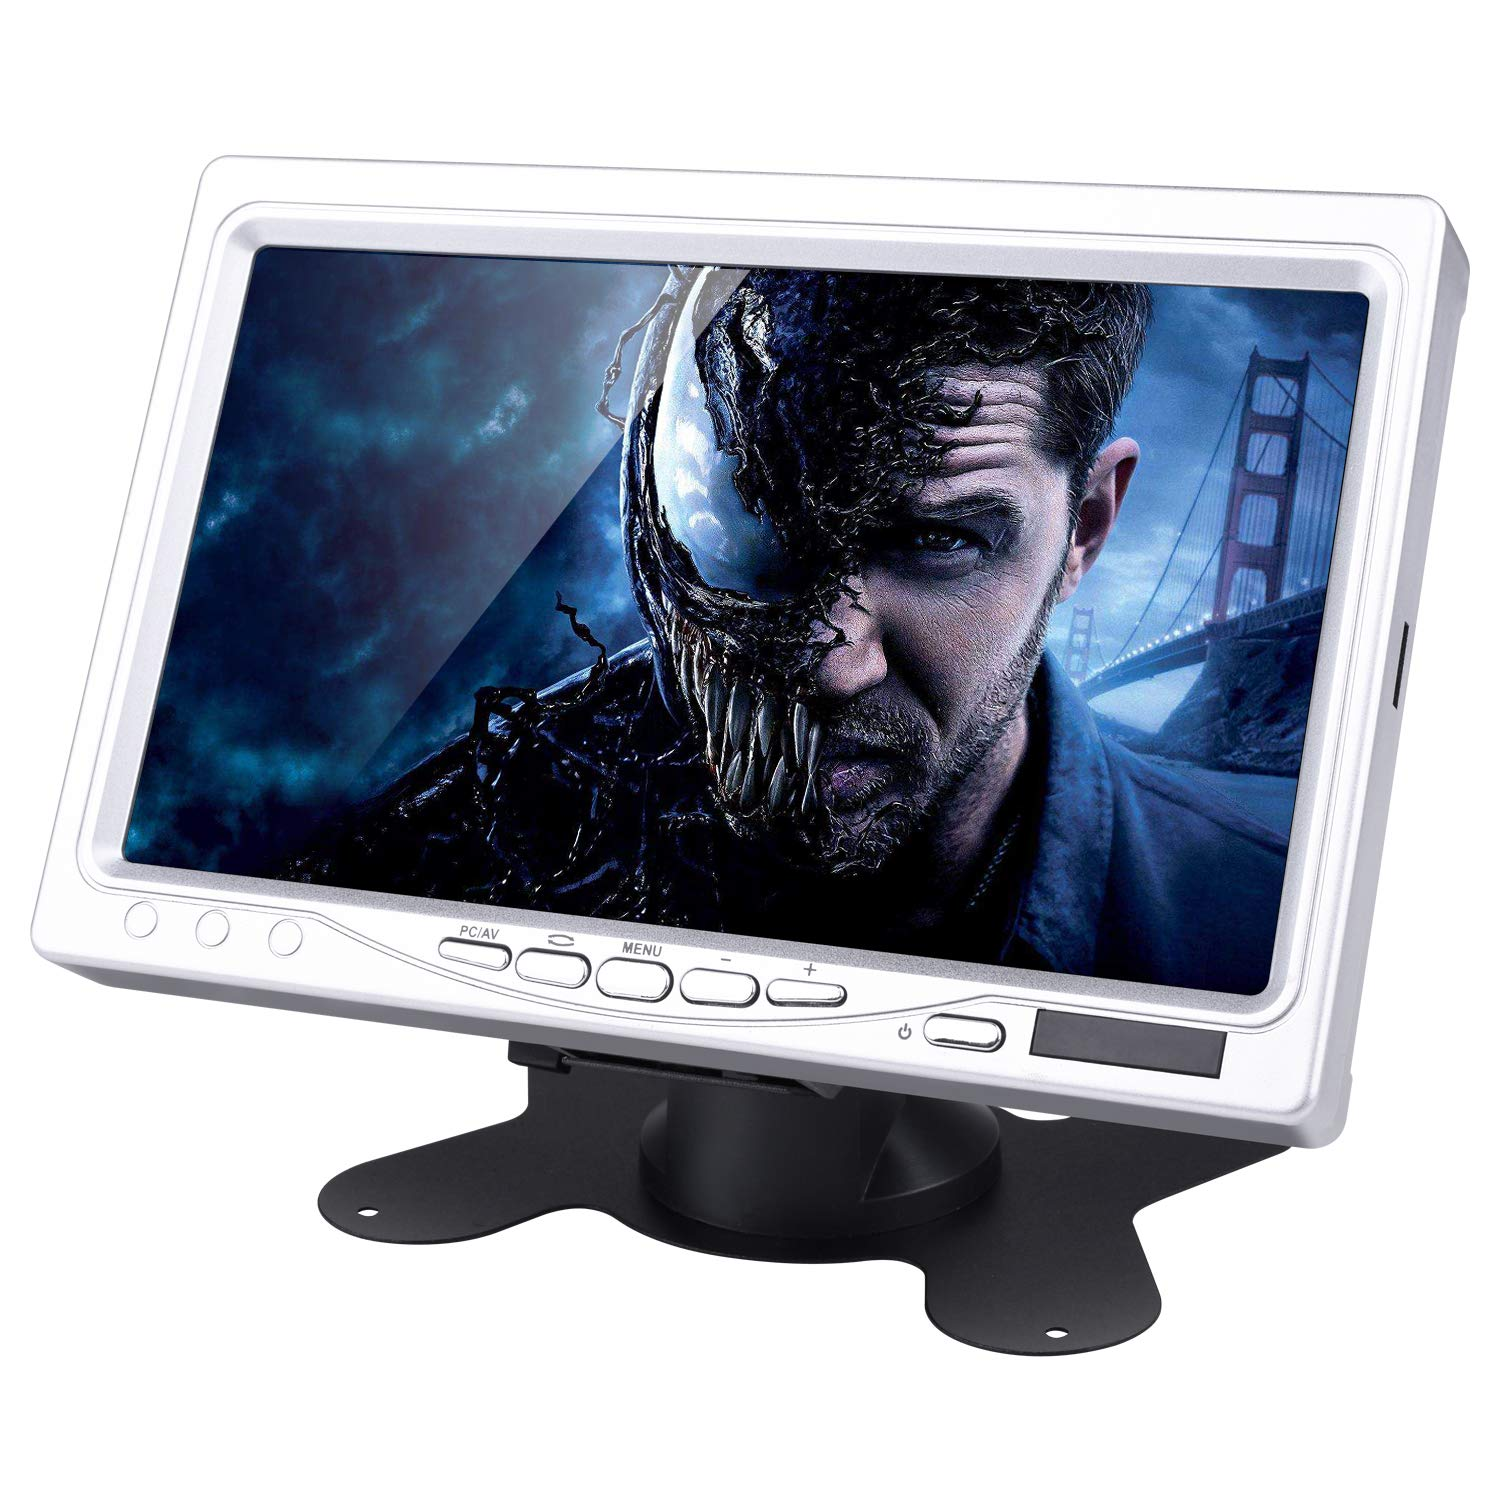 7 Inch HD Display, STARTO 1024x600 TFT LCD Screen Computer Monitor with AV/VGA/HDMI Input for PC Computer DVR VCR Car, Compatible with Raspberry Pi 3 2 1 Model B B+ TS07